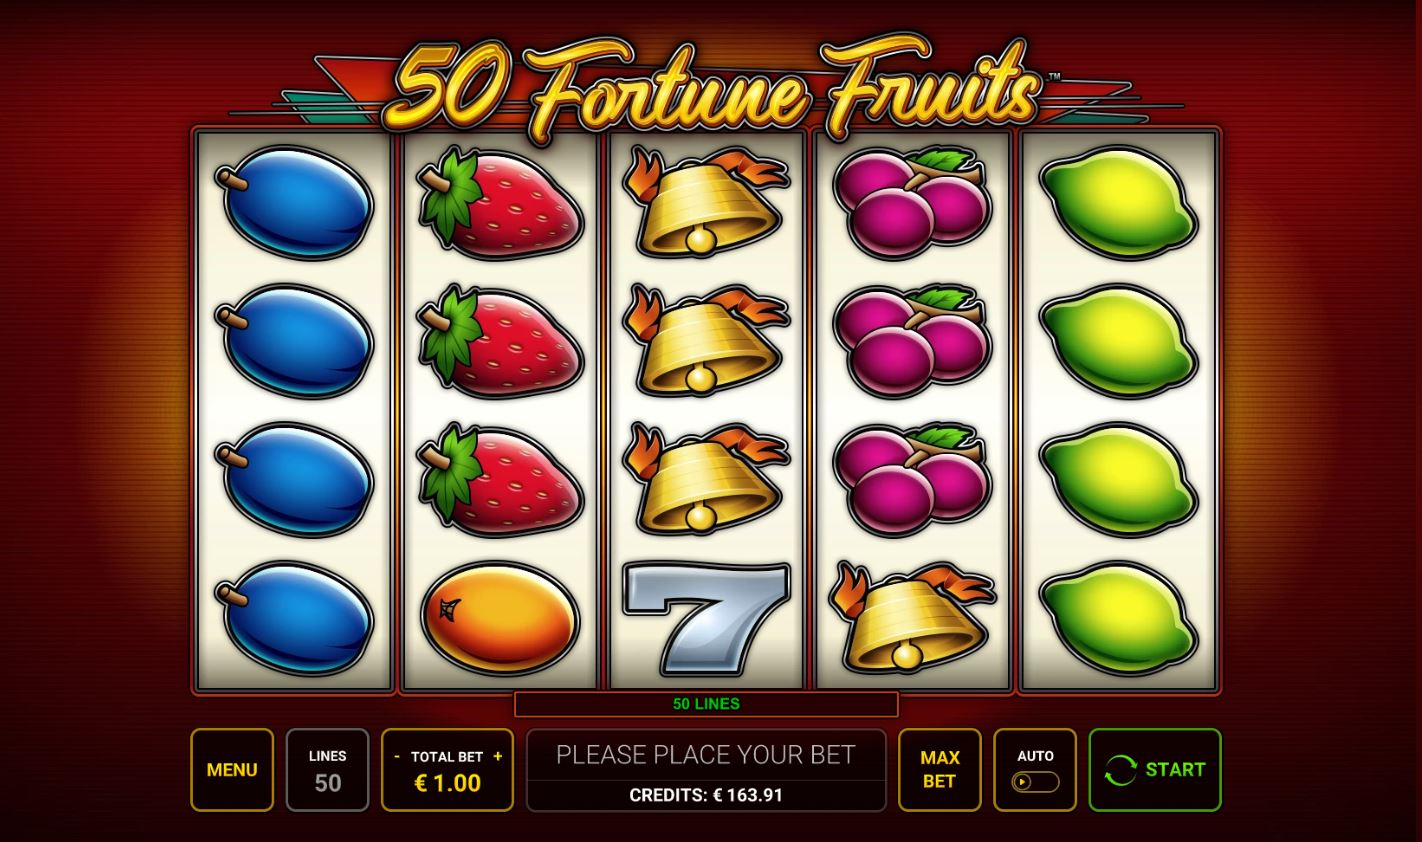 50 fortune fruits base game